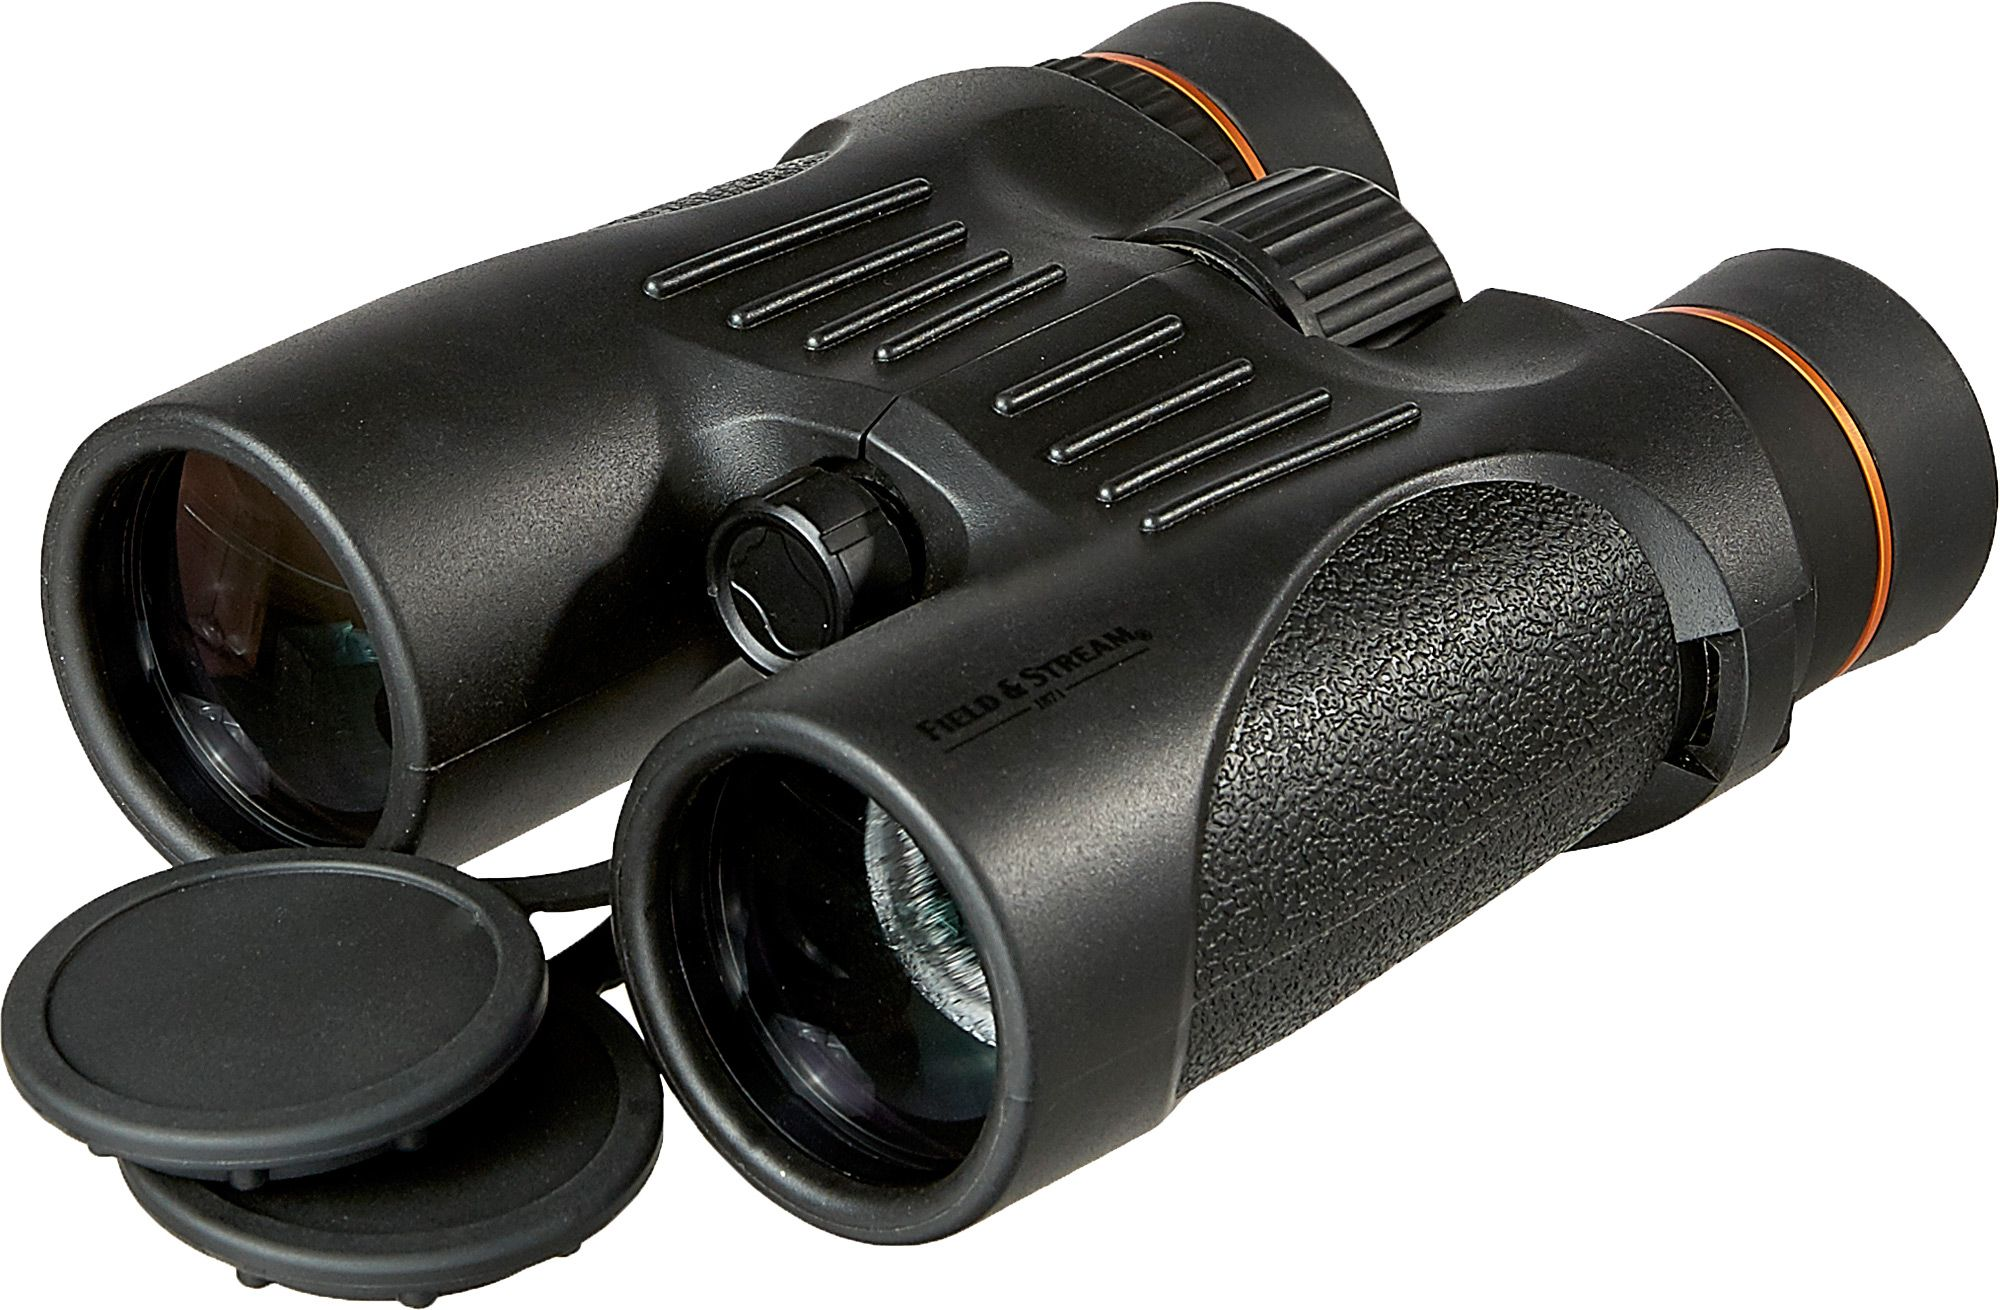 Field & Stream Sportsman Series 10x42 Binoculars | DICK'S Sporting Goods